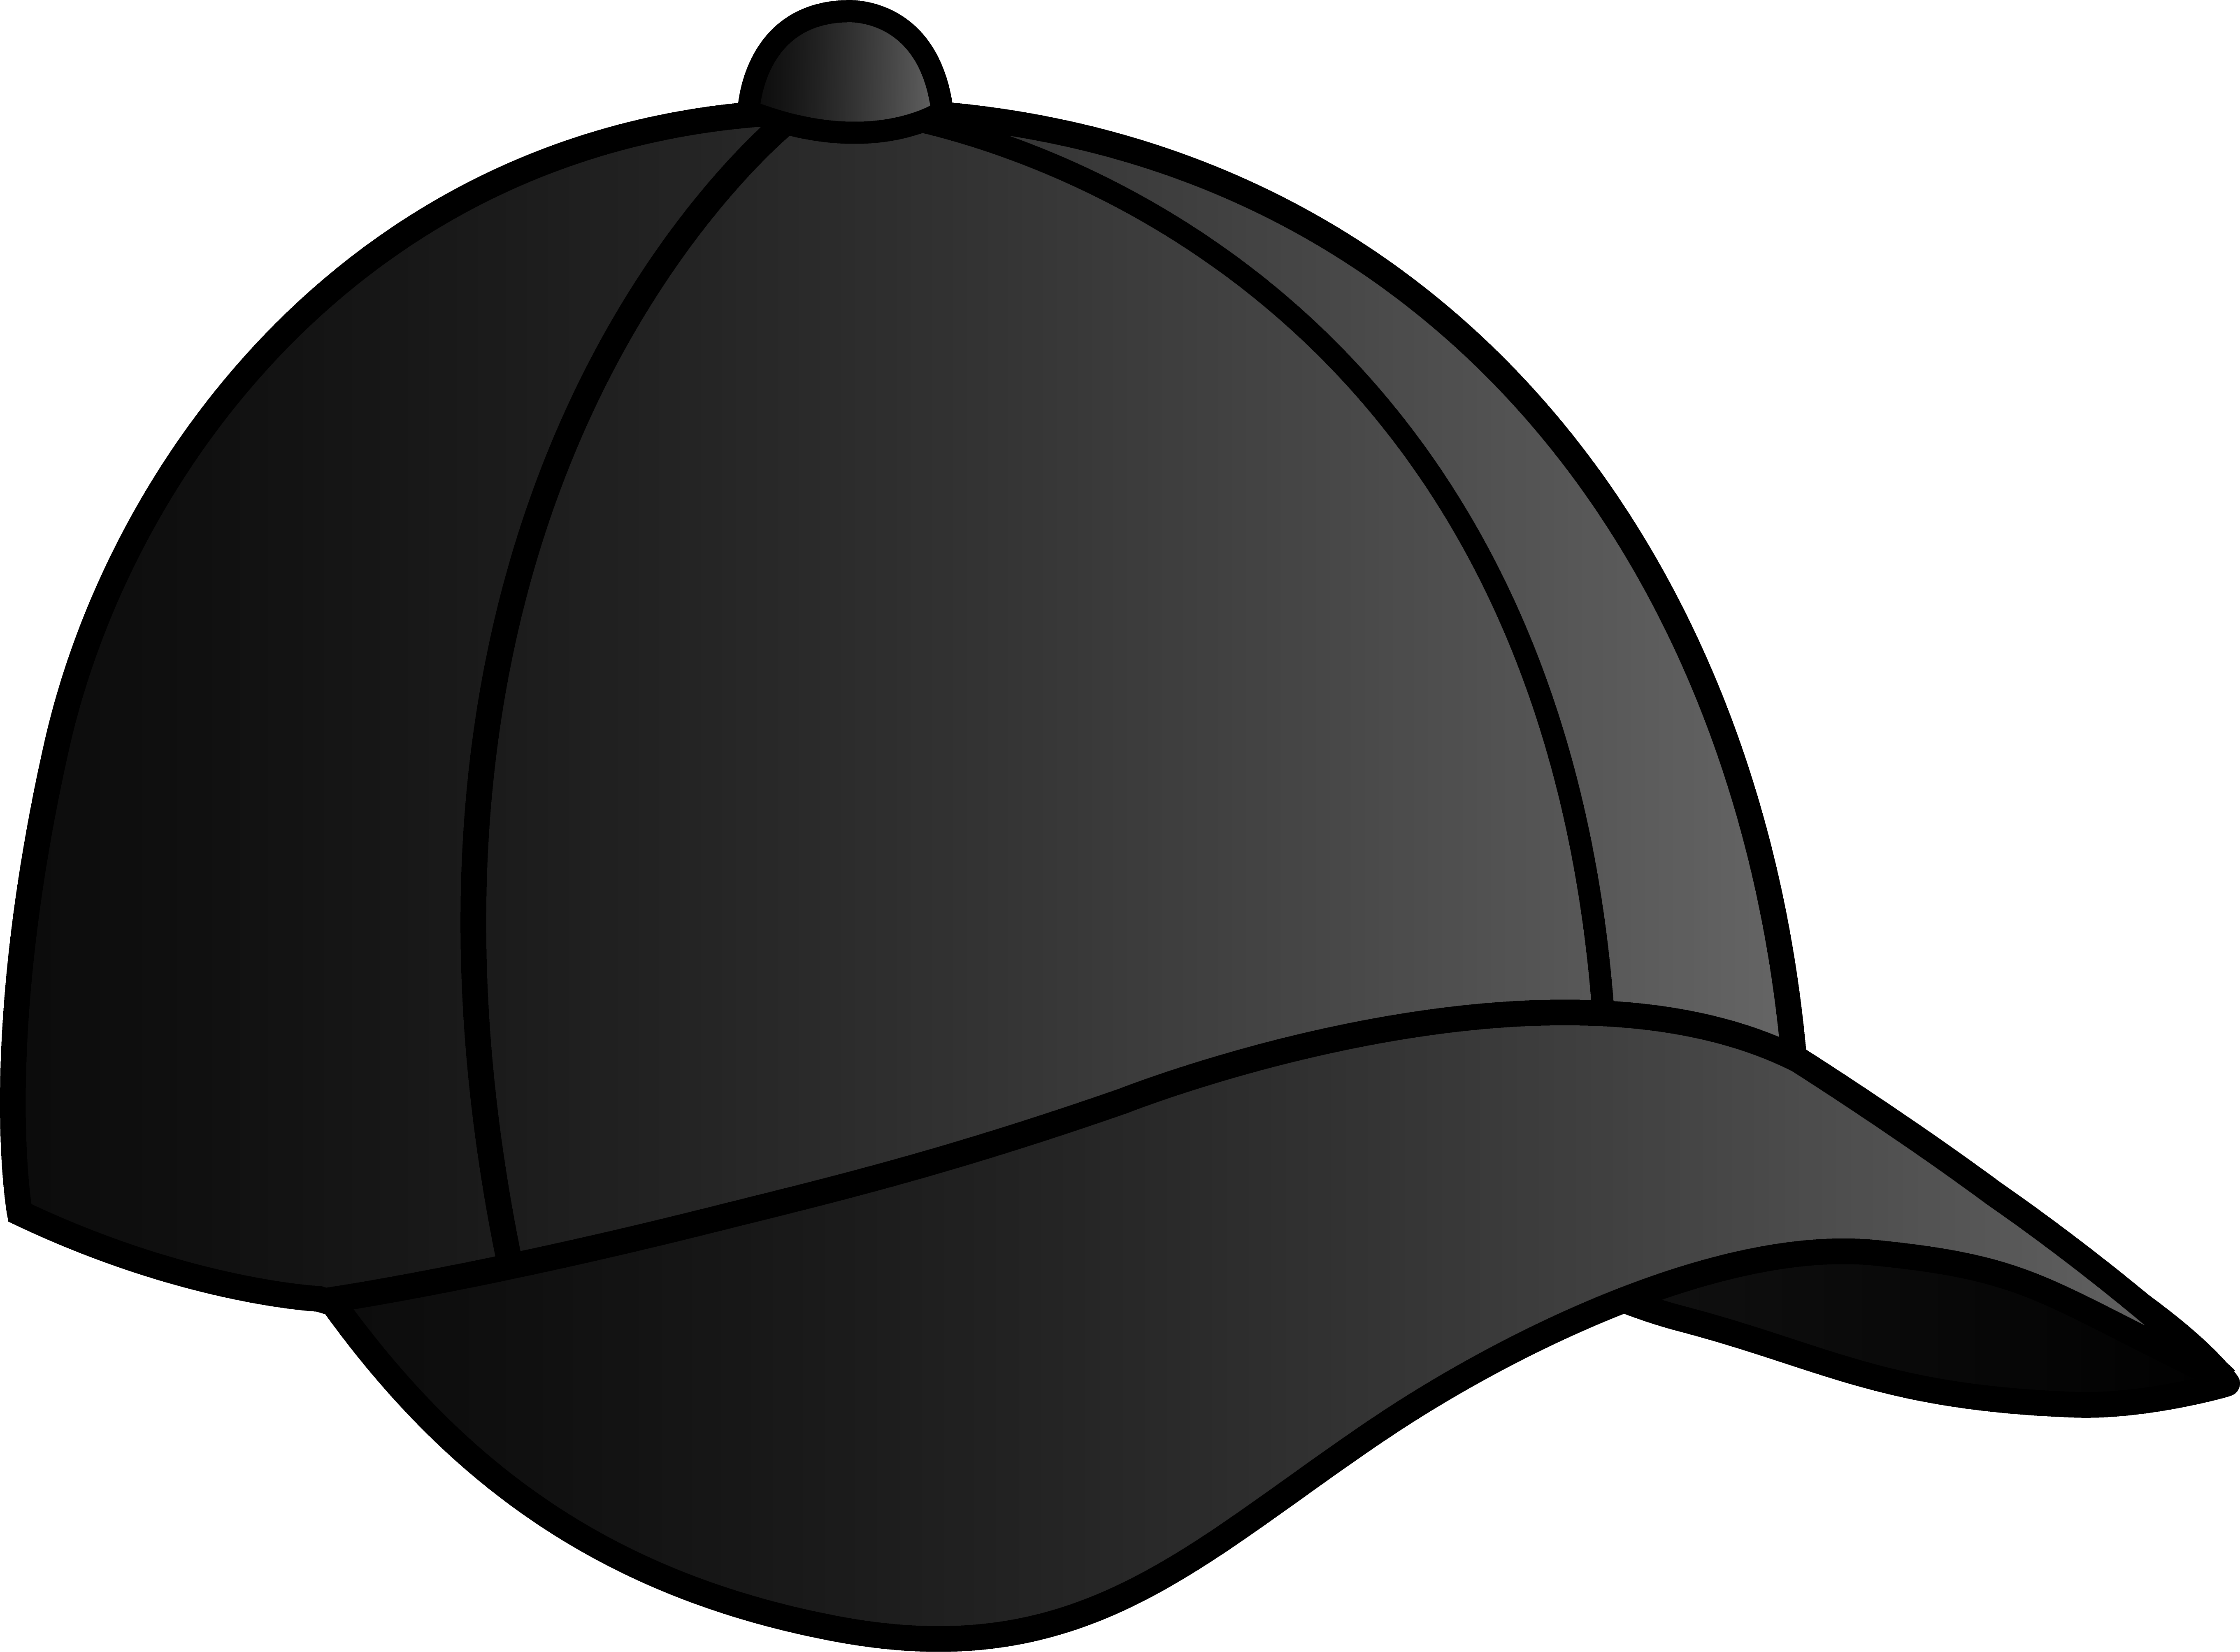 Baseball Hat Black Baseball Cap Free Clip Art Black Baseball Cap Cartoon Png Download Full Size Clipart 13480 Pinclipart